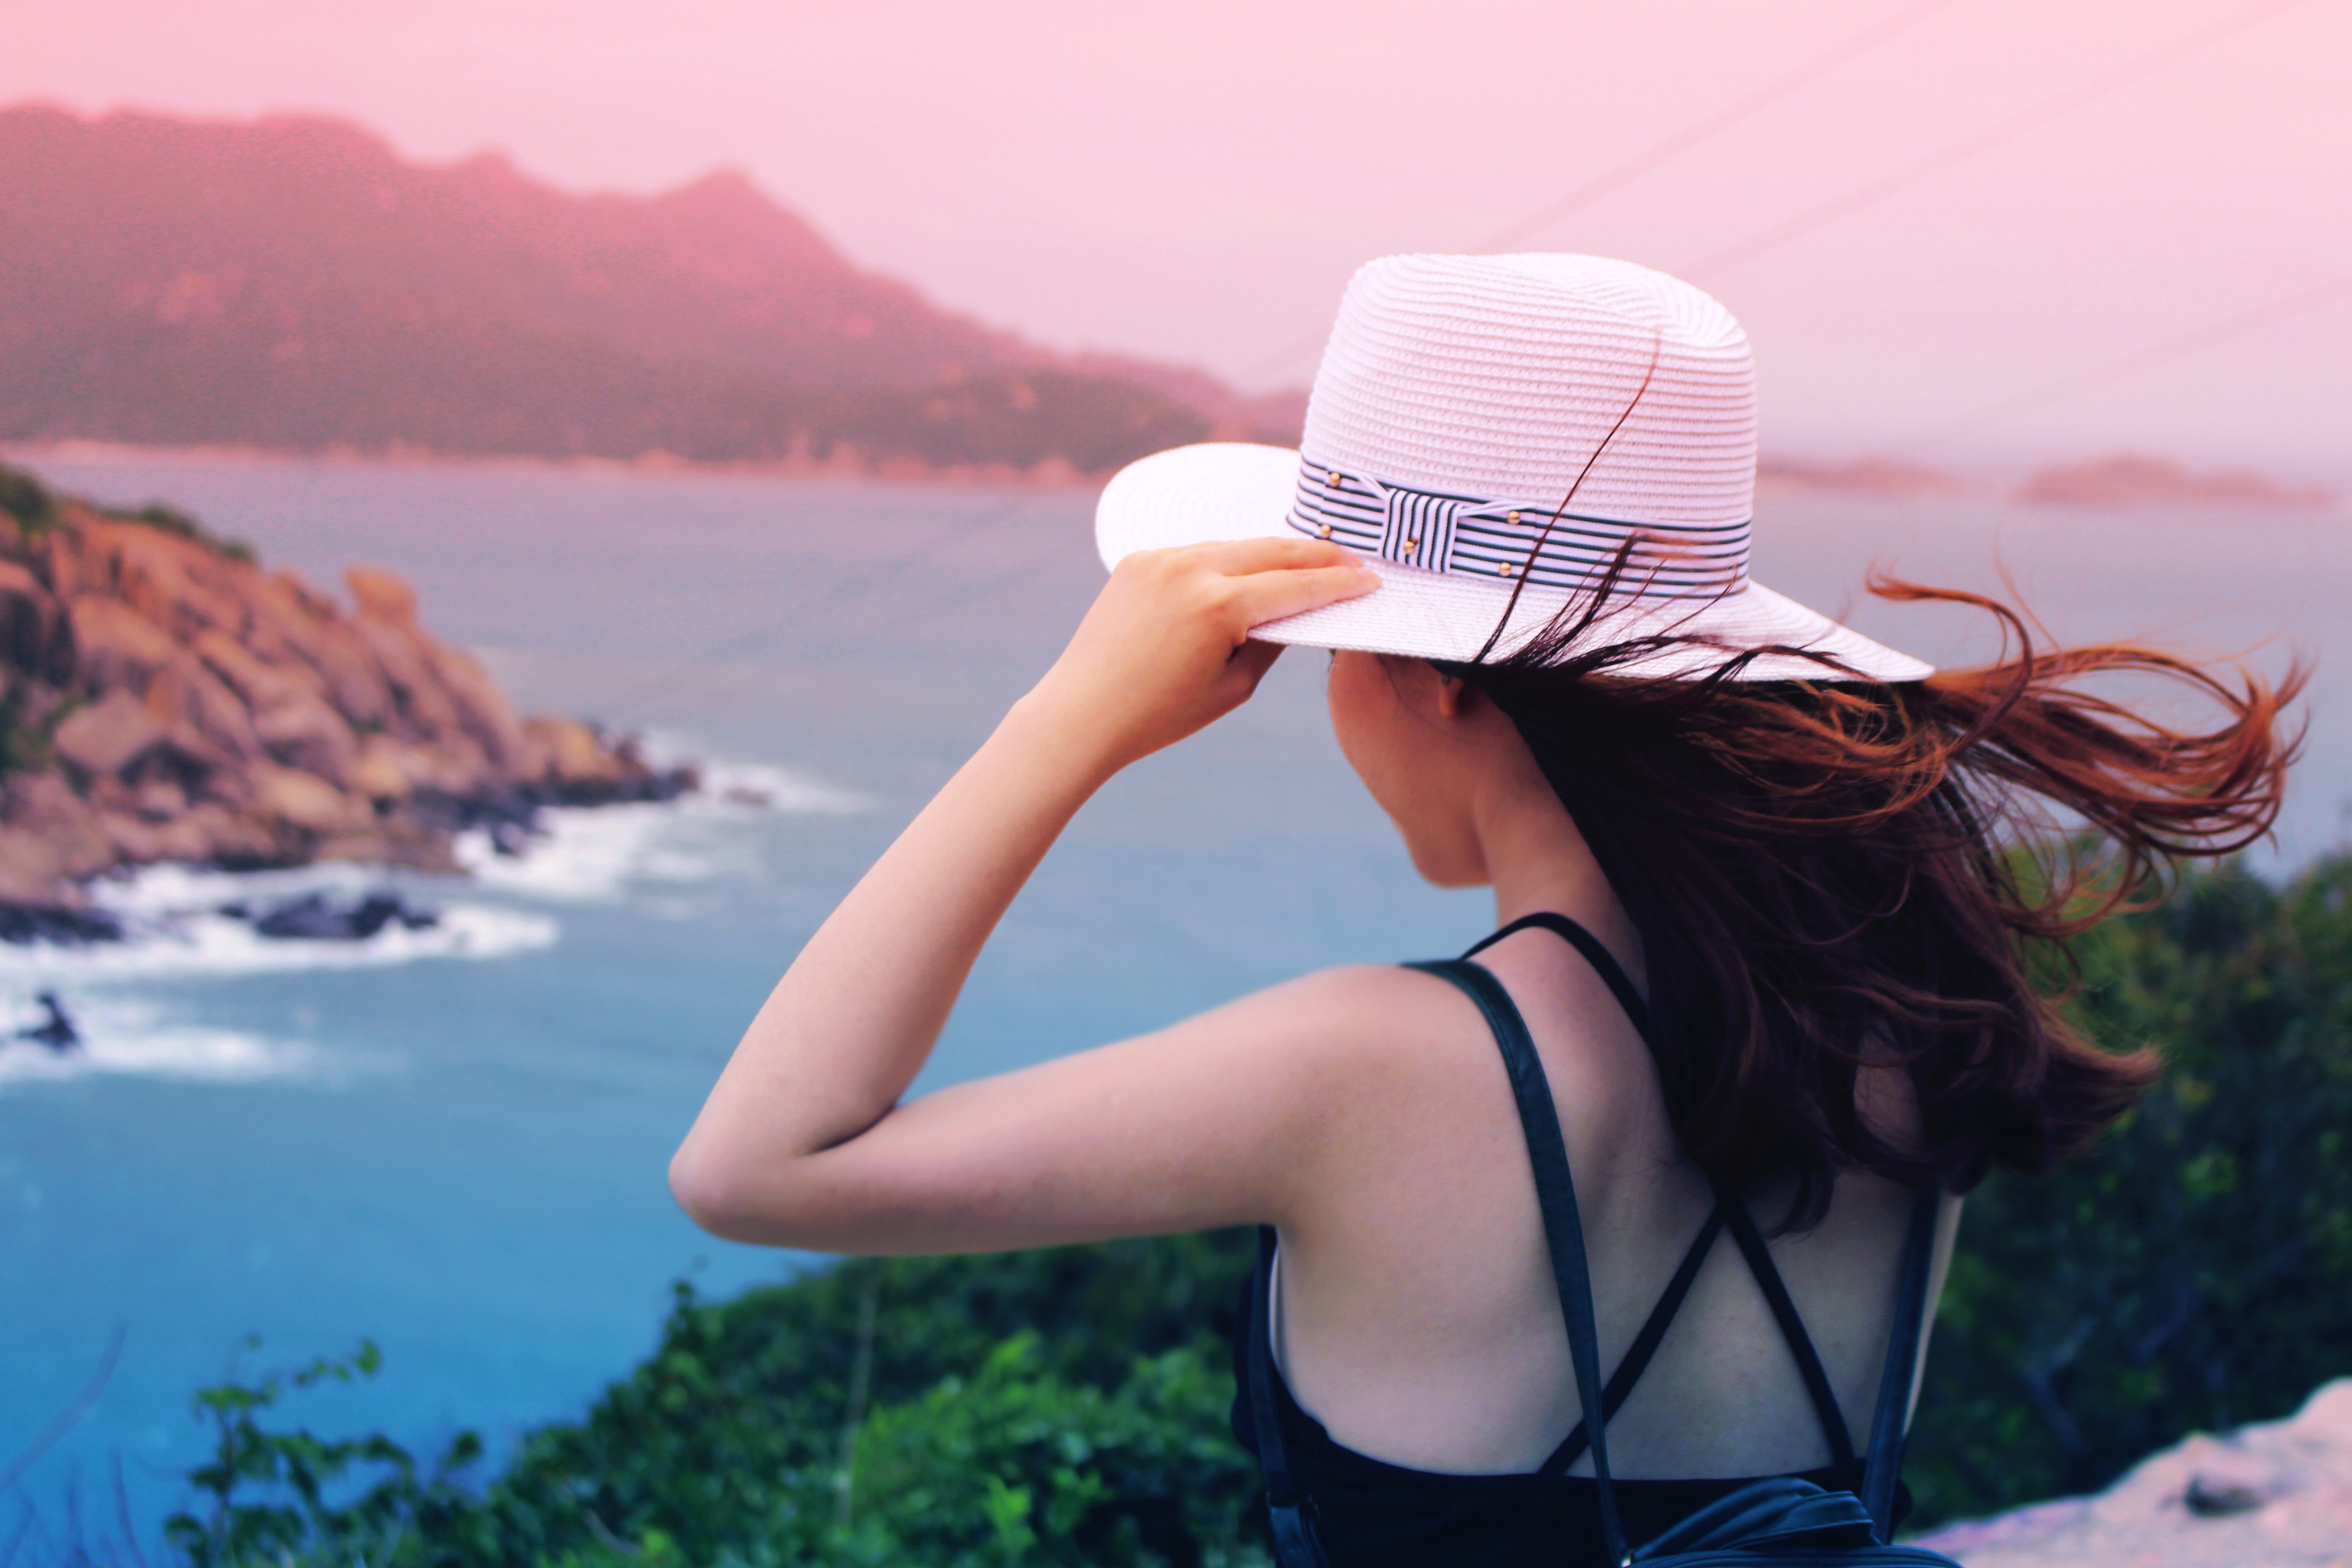 Wman holding wricker shade hat on ocean view photo